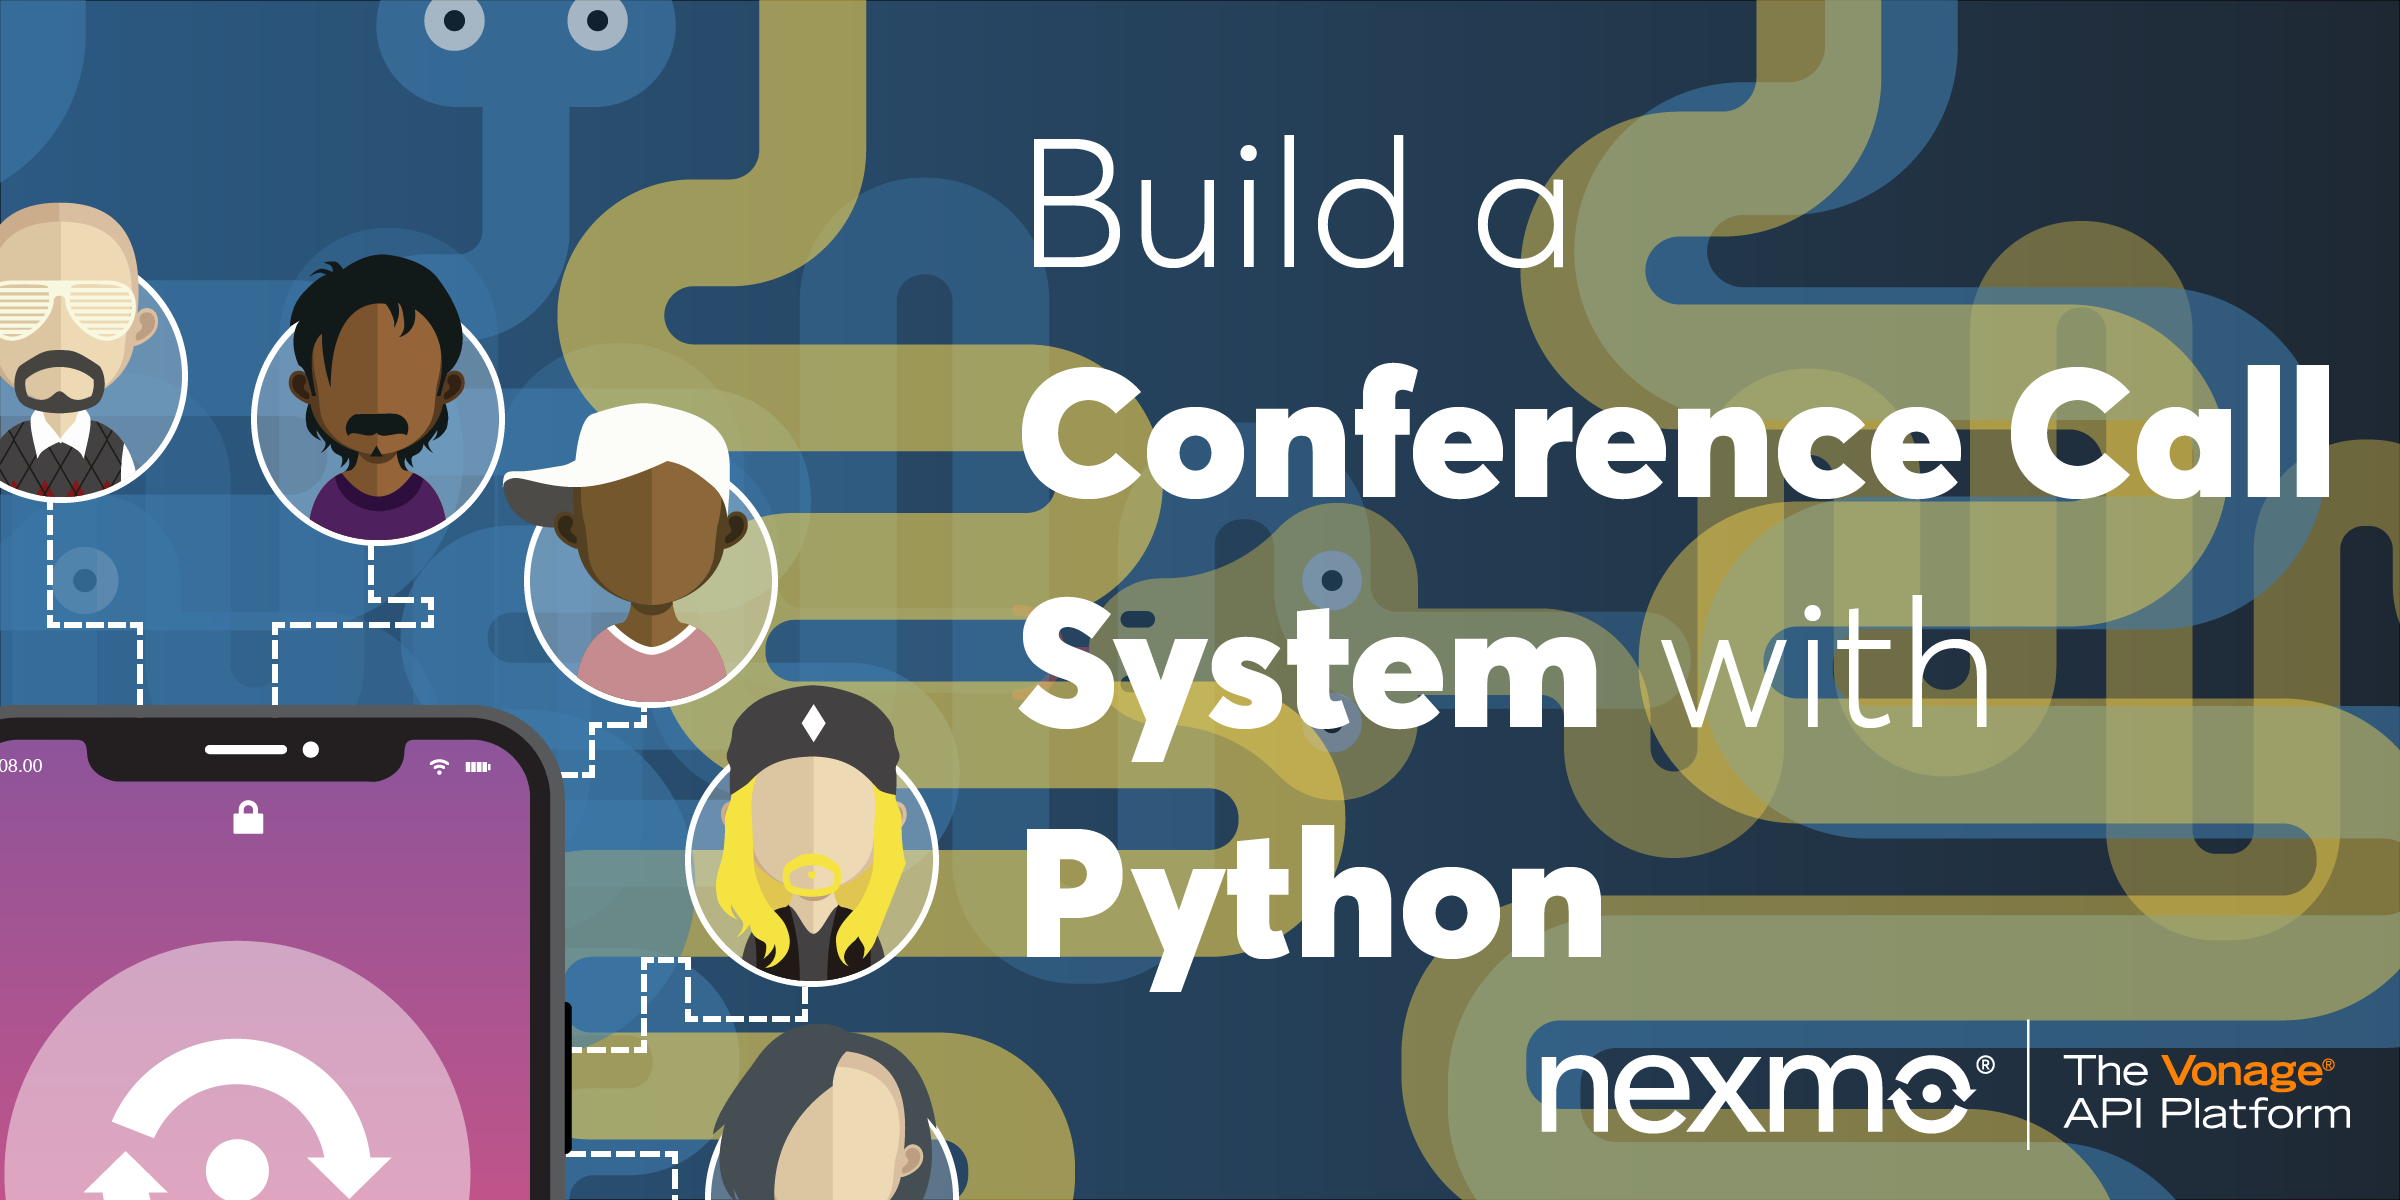 Build a Conference Call System with Python